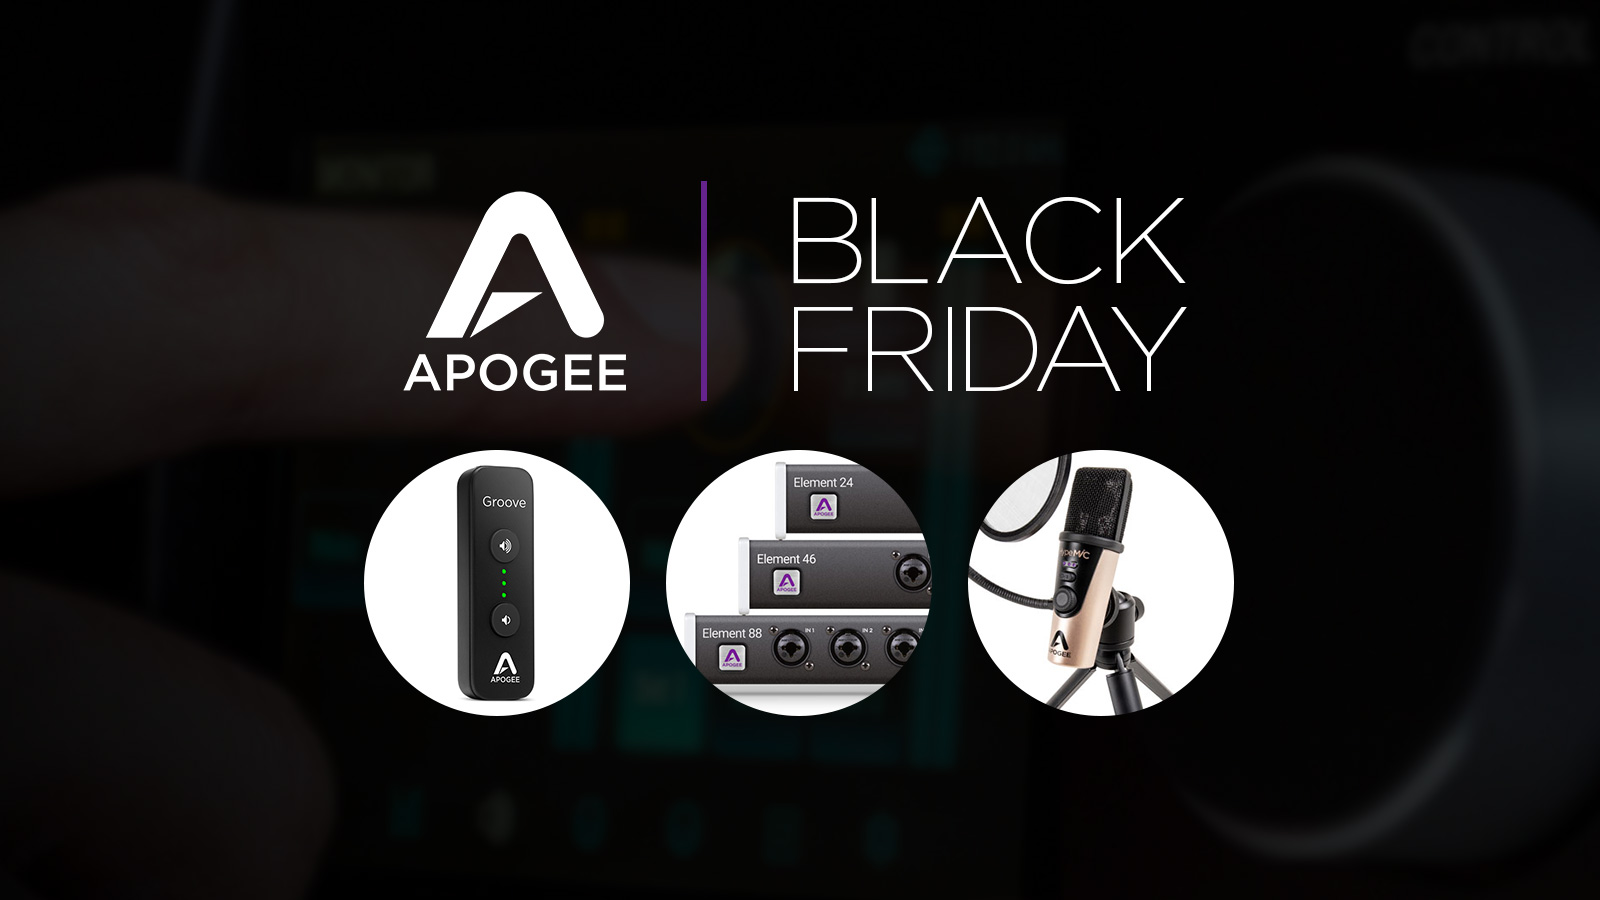 Apogee BLACK FRIDAY 2019 SALE